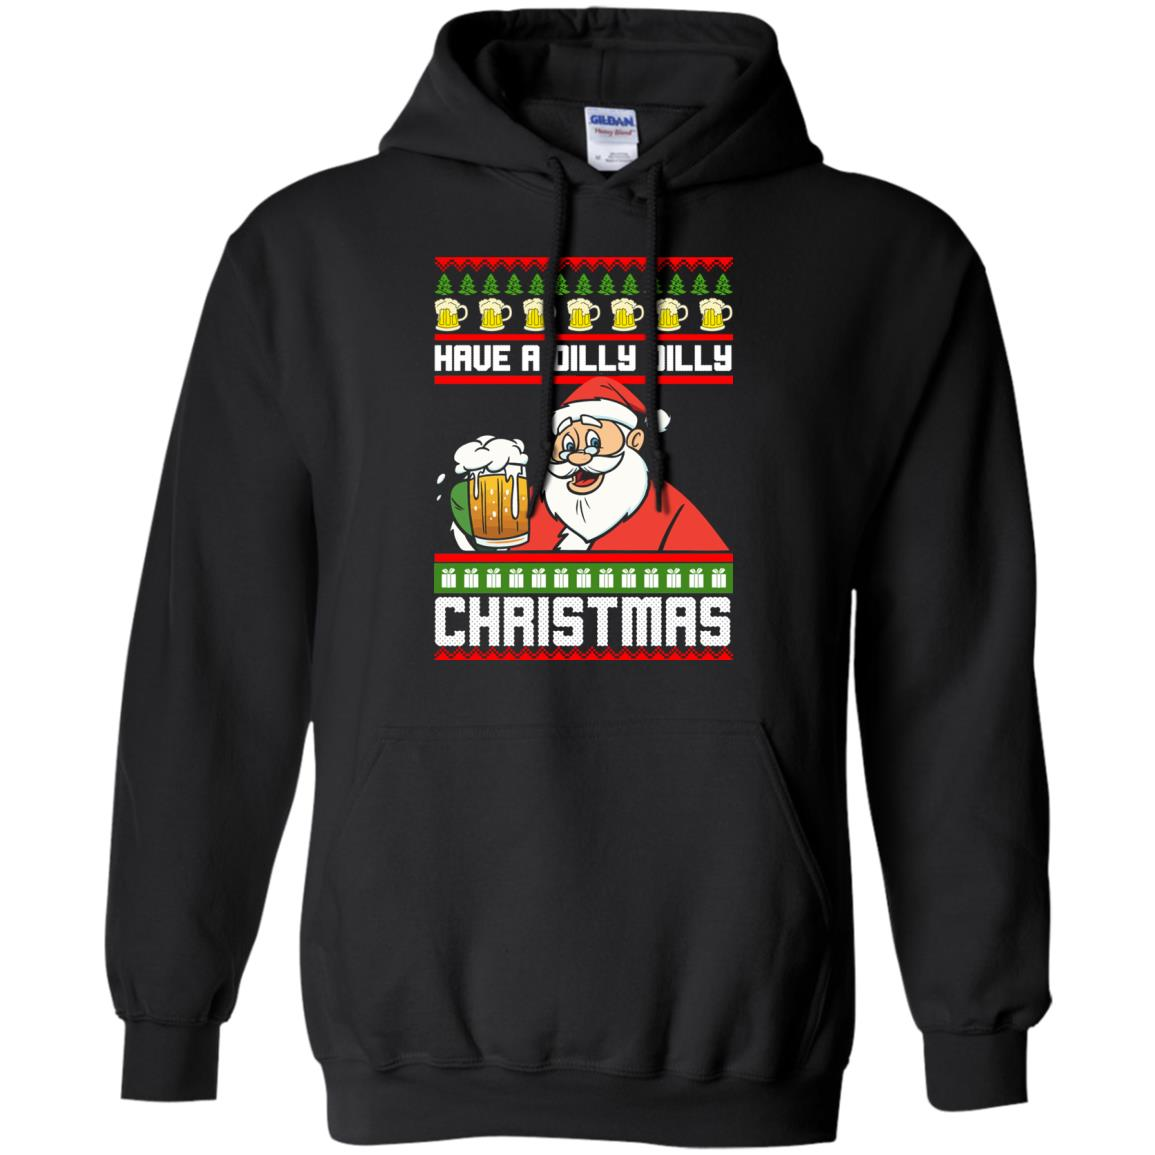 image 6130 - Have a Dilly Dilly Christmas Ugly Sweatshirt, Long Sleeve